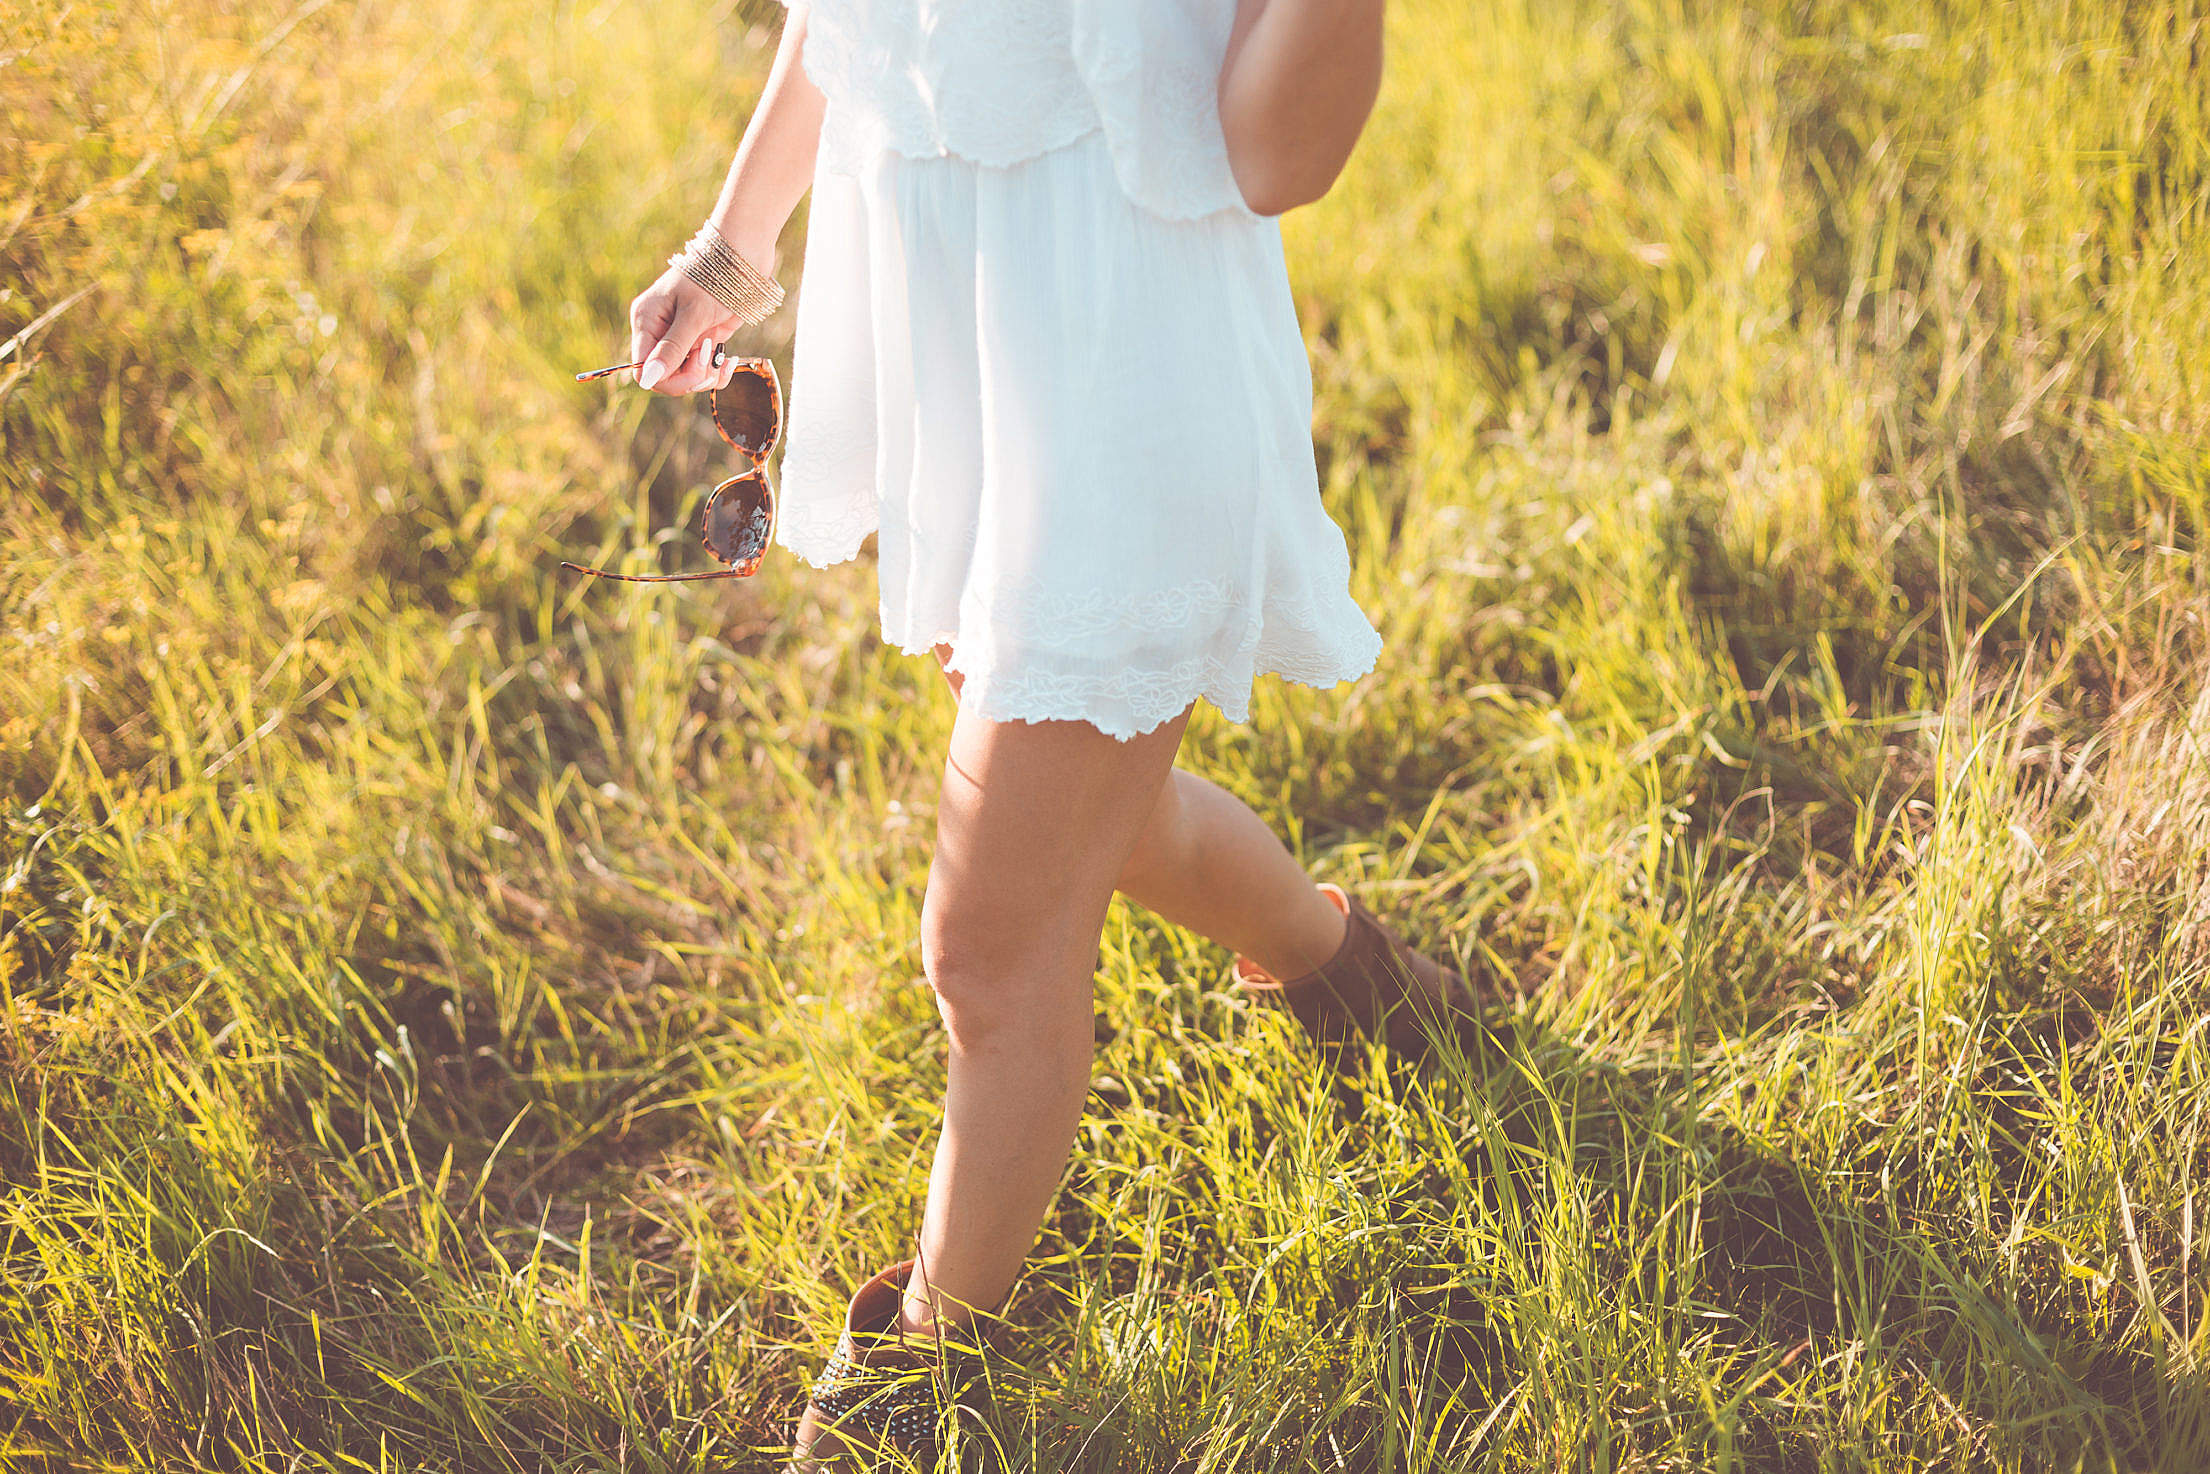 Young Girl Enjoying Her Free Time In a Sunny Meadow Free Stock Photo